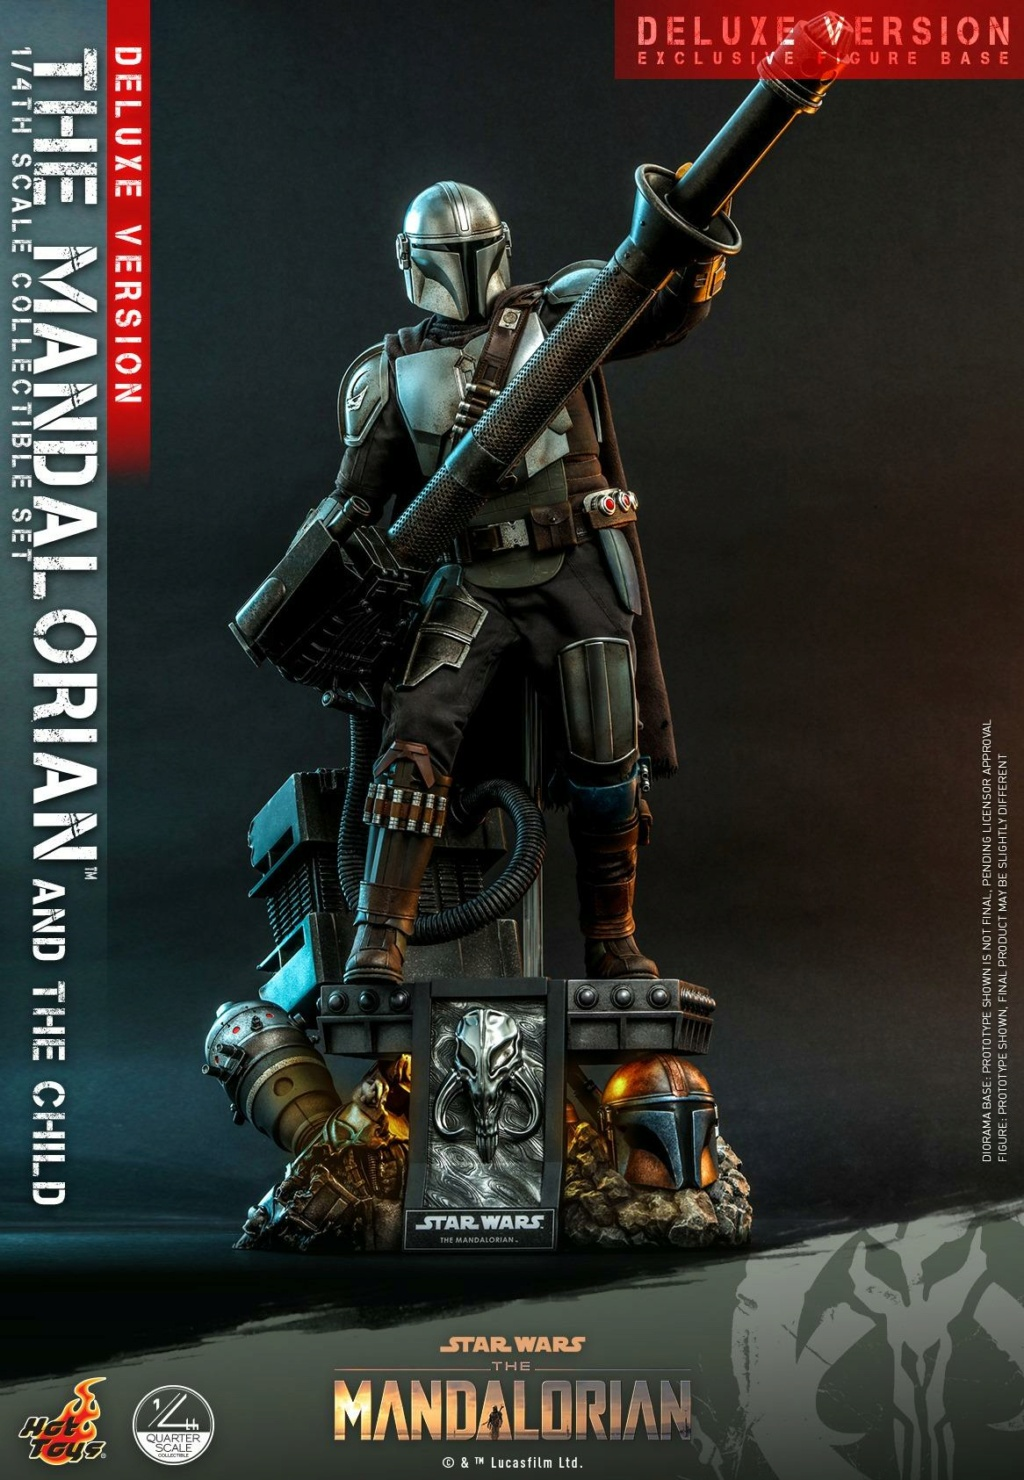 The Mandalorian & The Child Set (Deluxe) 1/4th - Hot Toys 1426